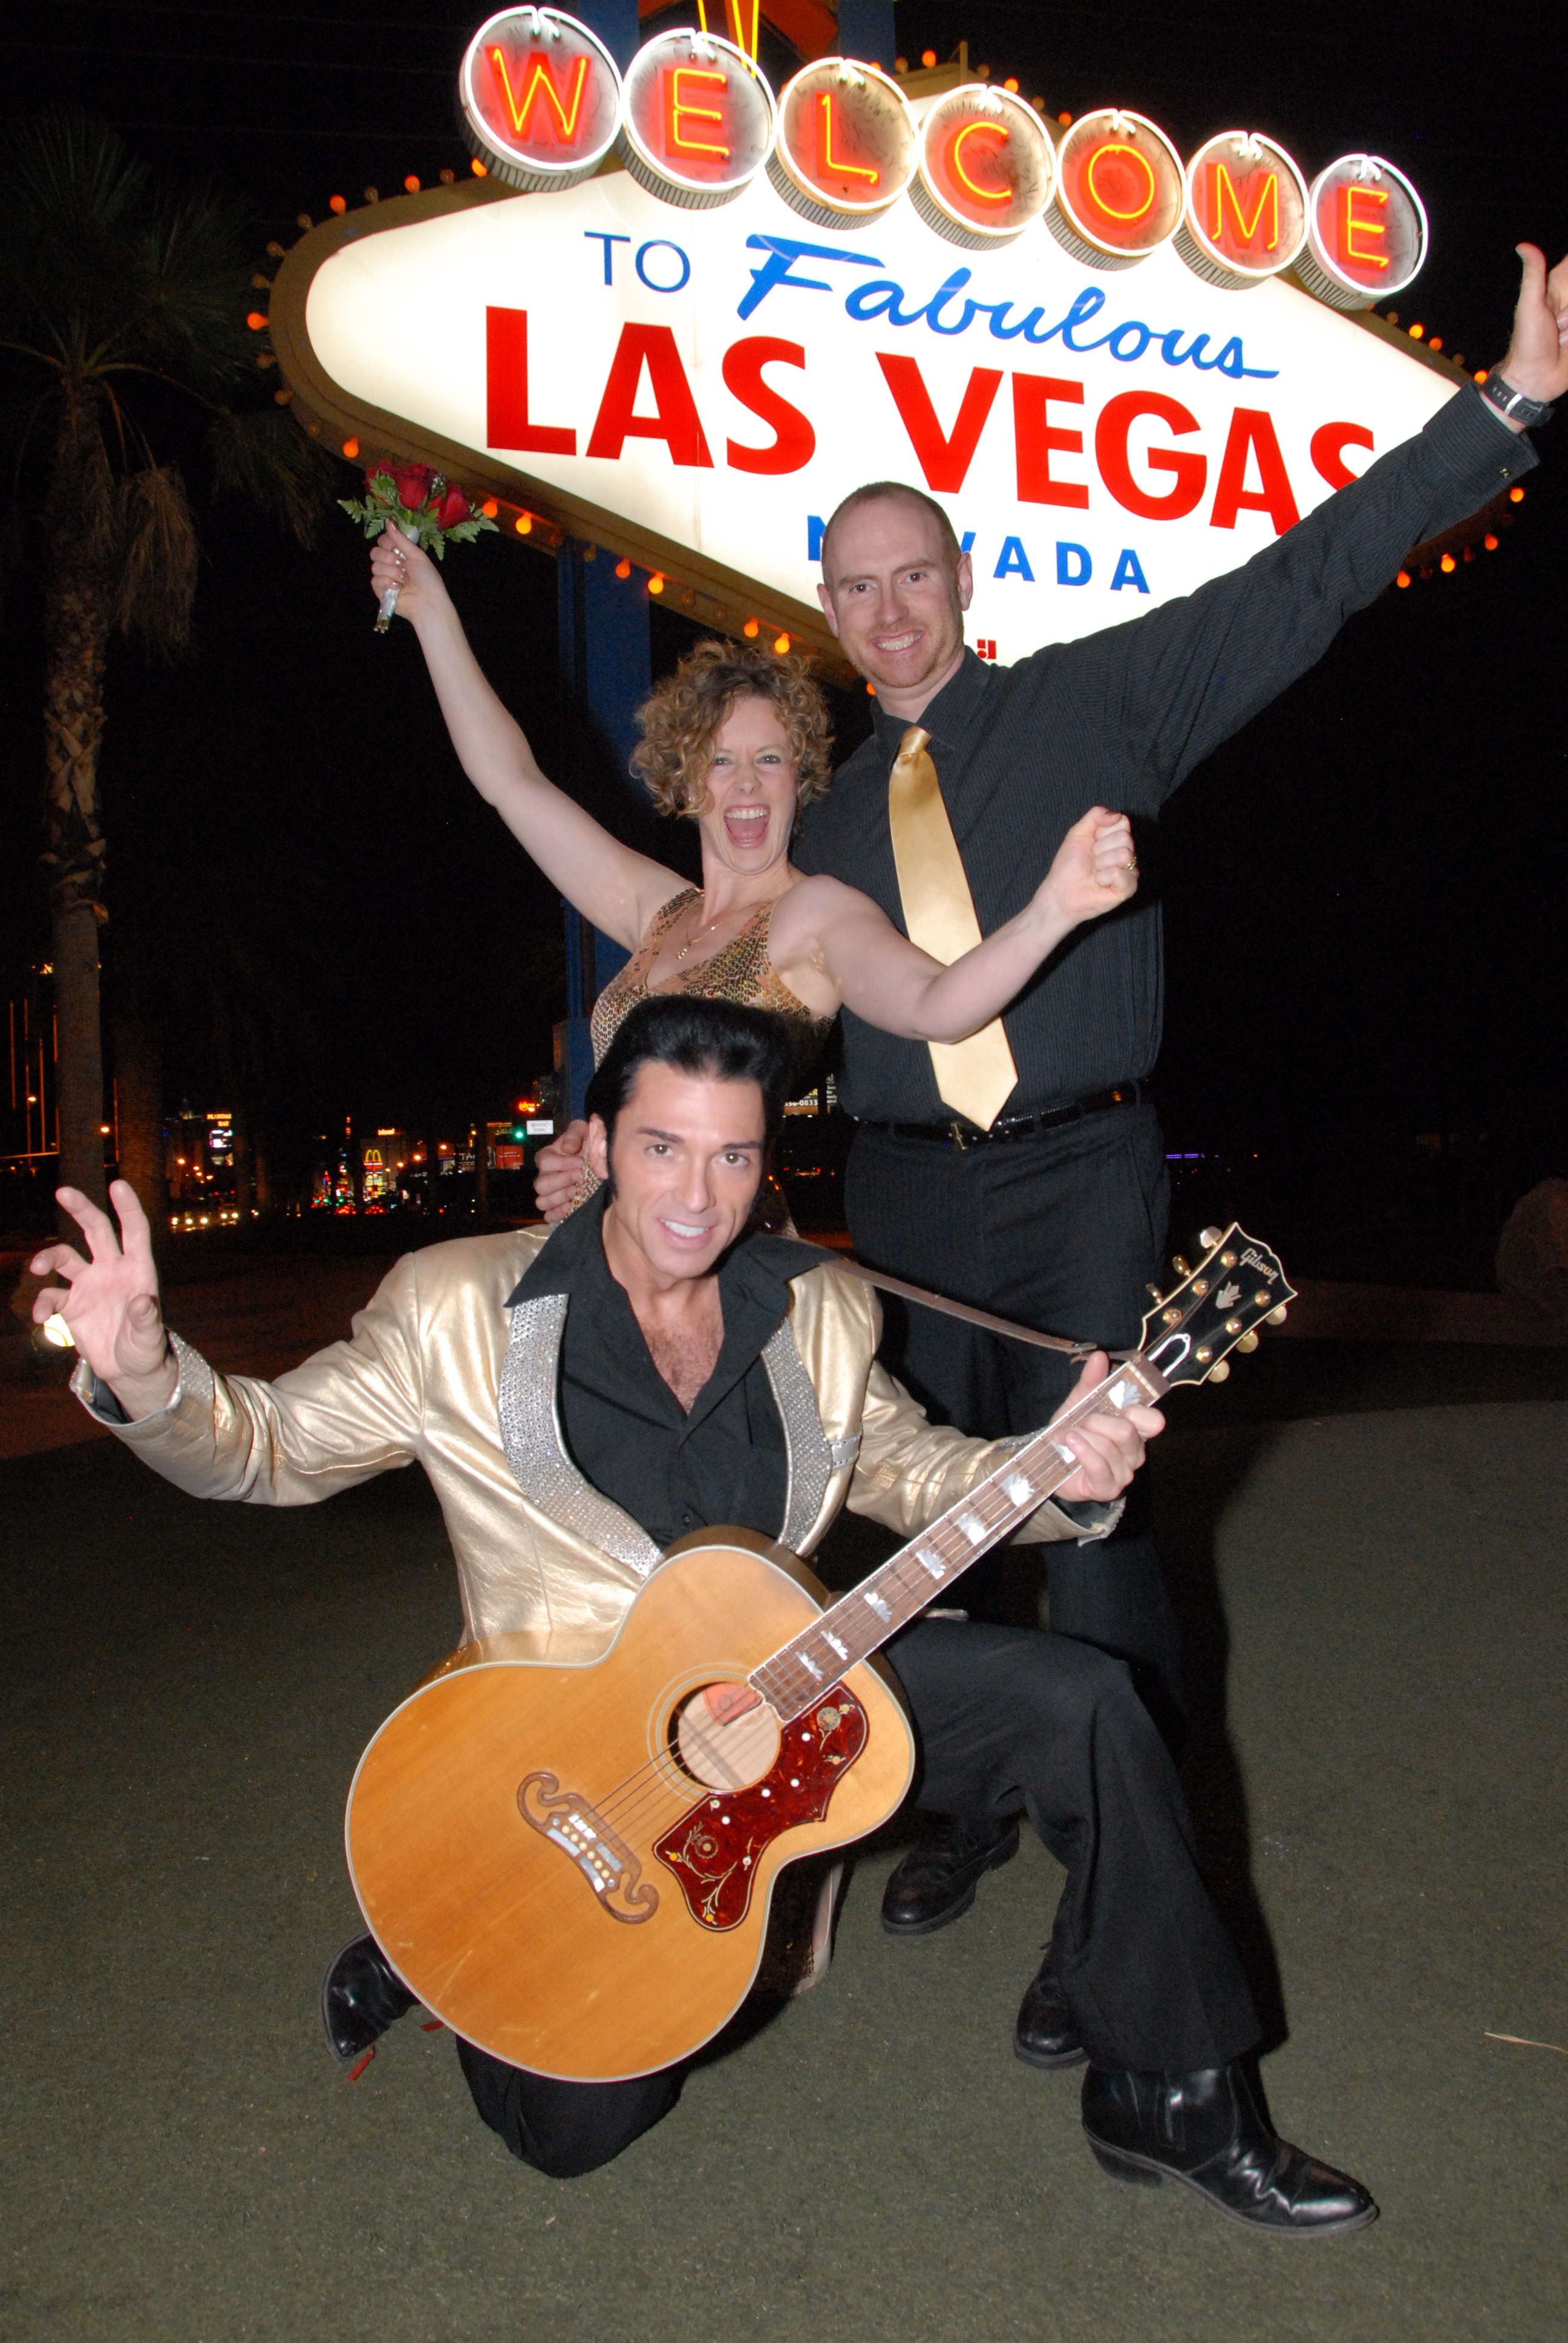 Mark And I Are Going To Renew Our Wedding Vows In May Las Vegas Wedding Chapel Vegas Vow Renewal Ideas Vegas Wedding Chapel